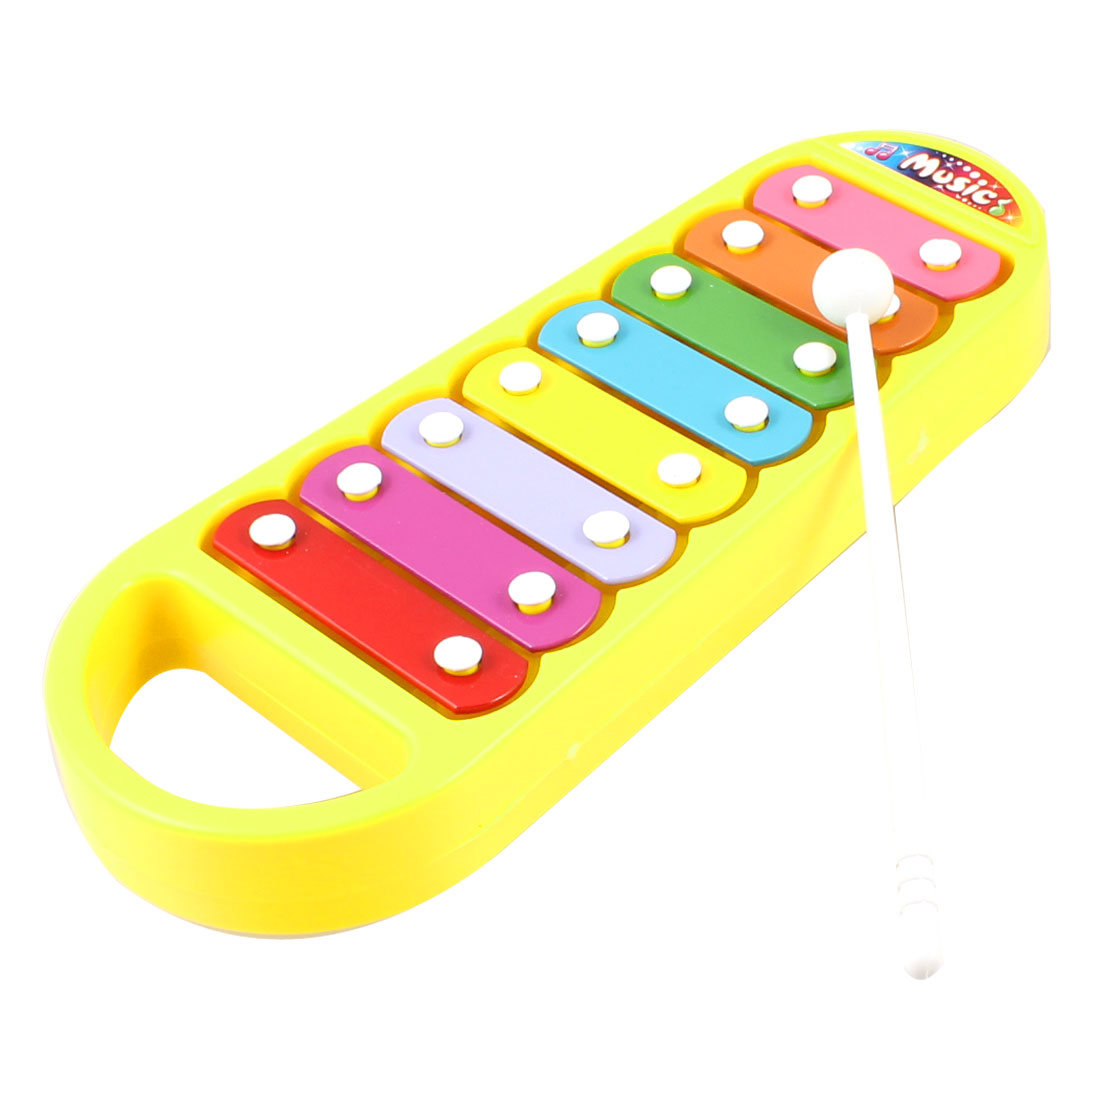 Multicolor Metal Plate Yellow Plastic Xylophone Musical Instrument Toy for Kids